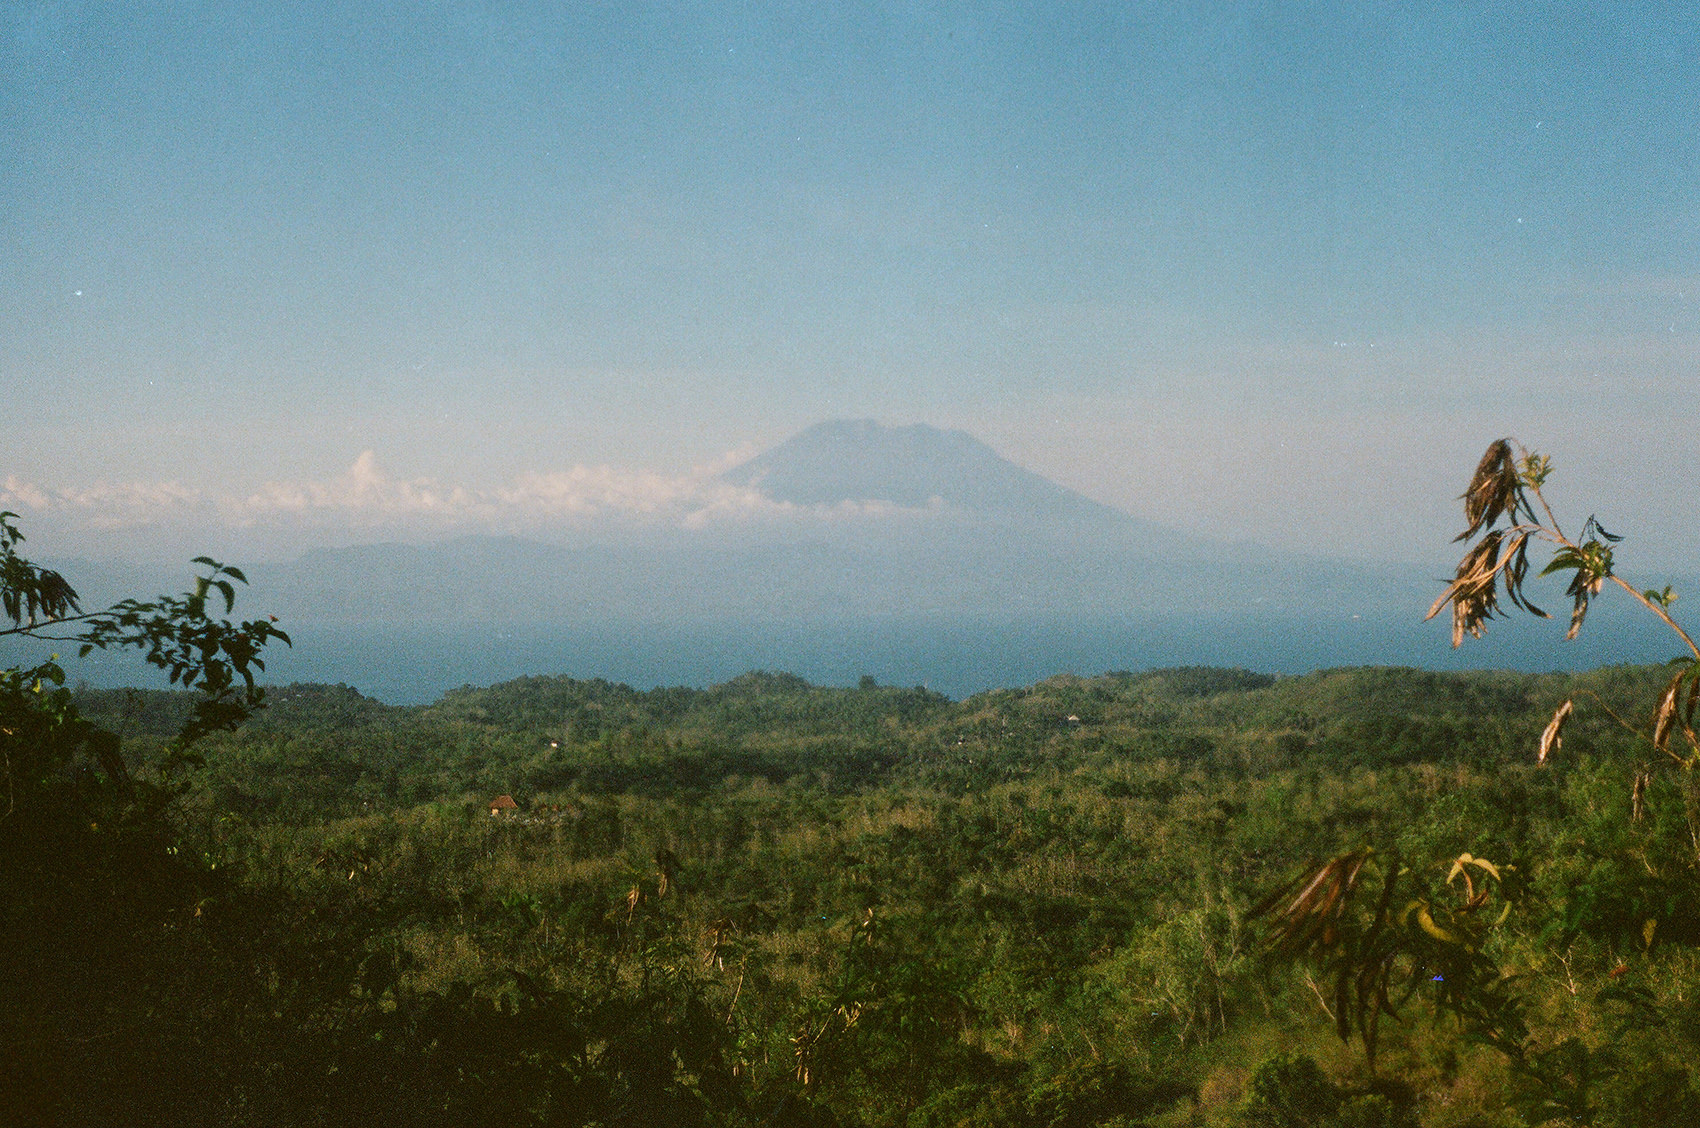 the Majestic of Mount Agung